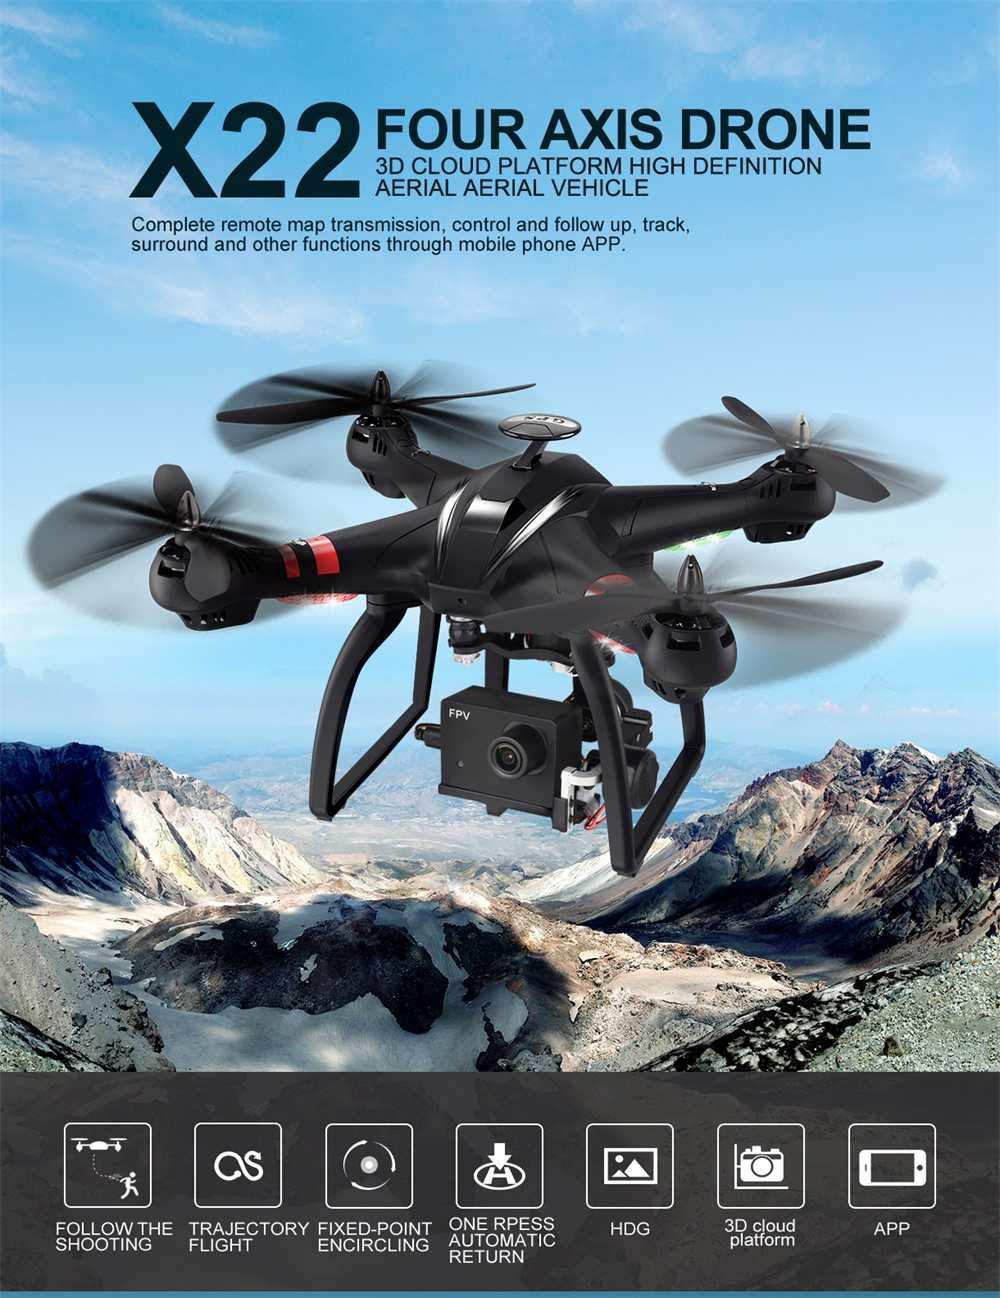 BAYANGTOYS X22 1080P Camera Brushless Motor Dual GPS WIFI FPV with 4-Axis Gimbal RC Drone Quadcopter RTF